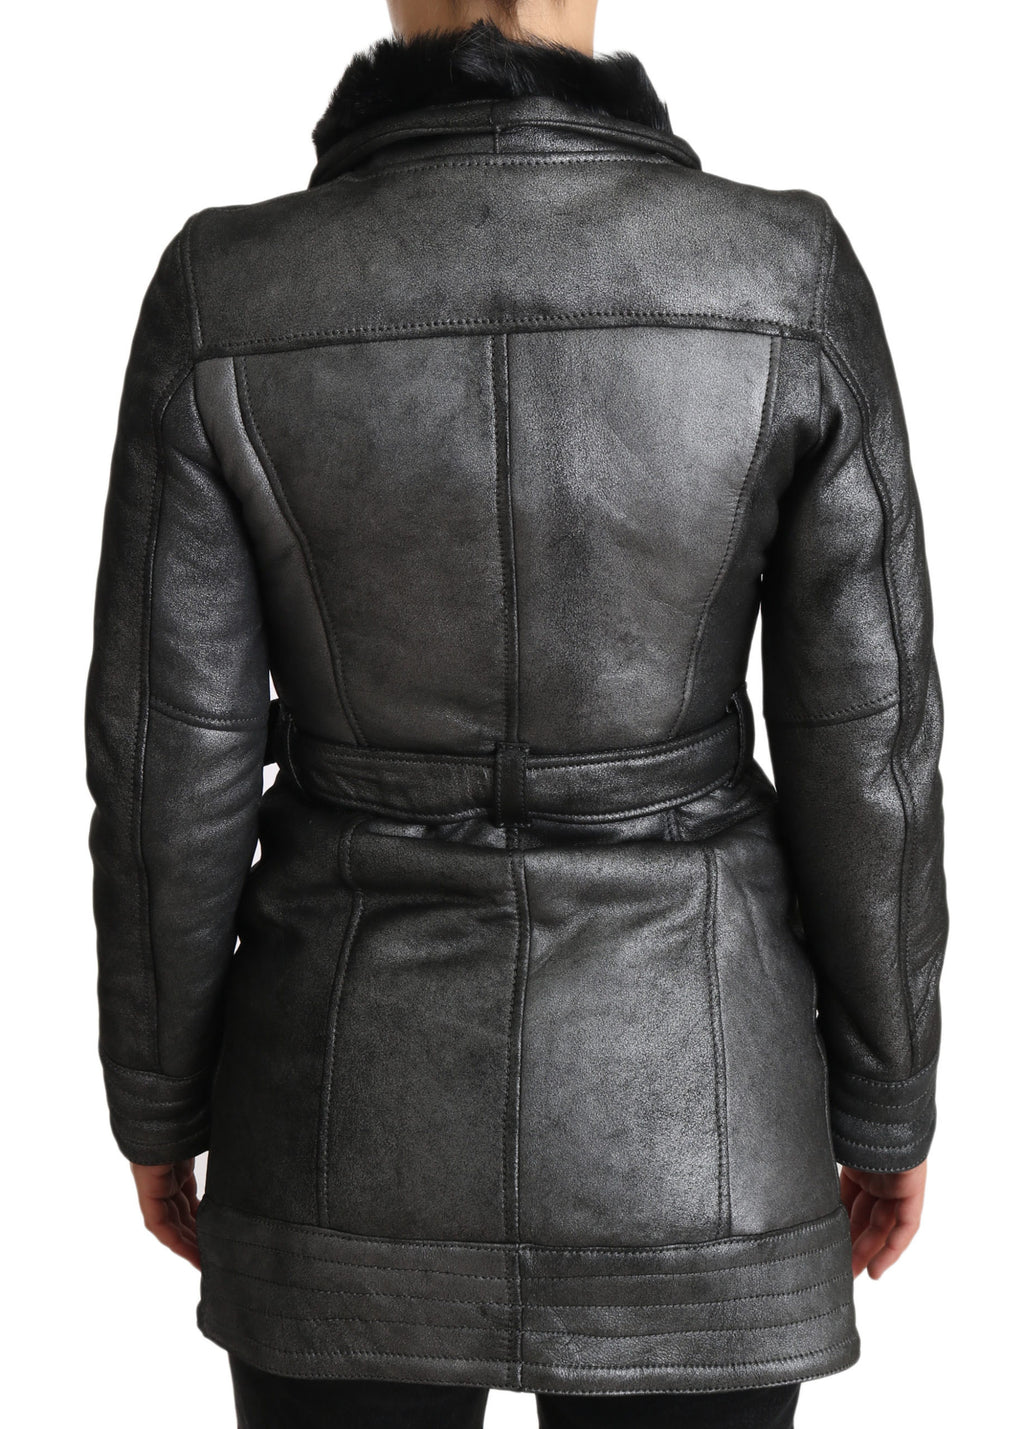 Gray Leather Montone Fur Shearling Coat Jacket